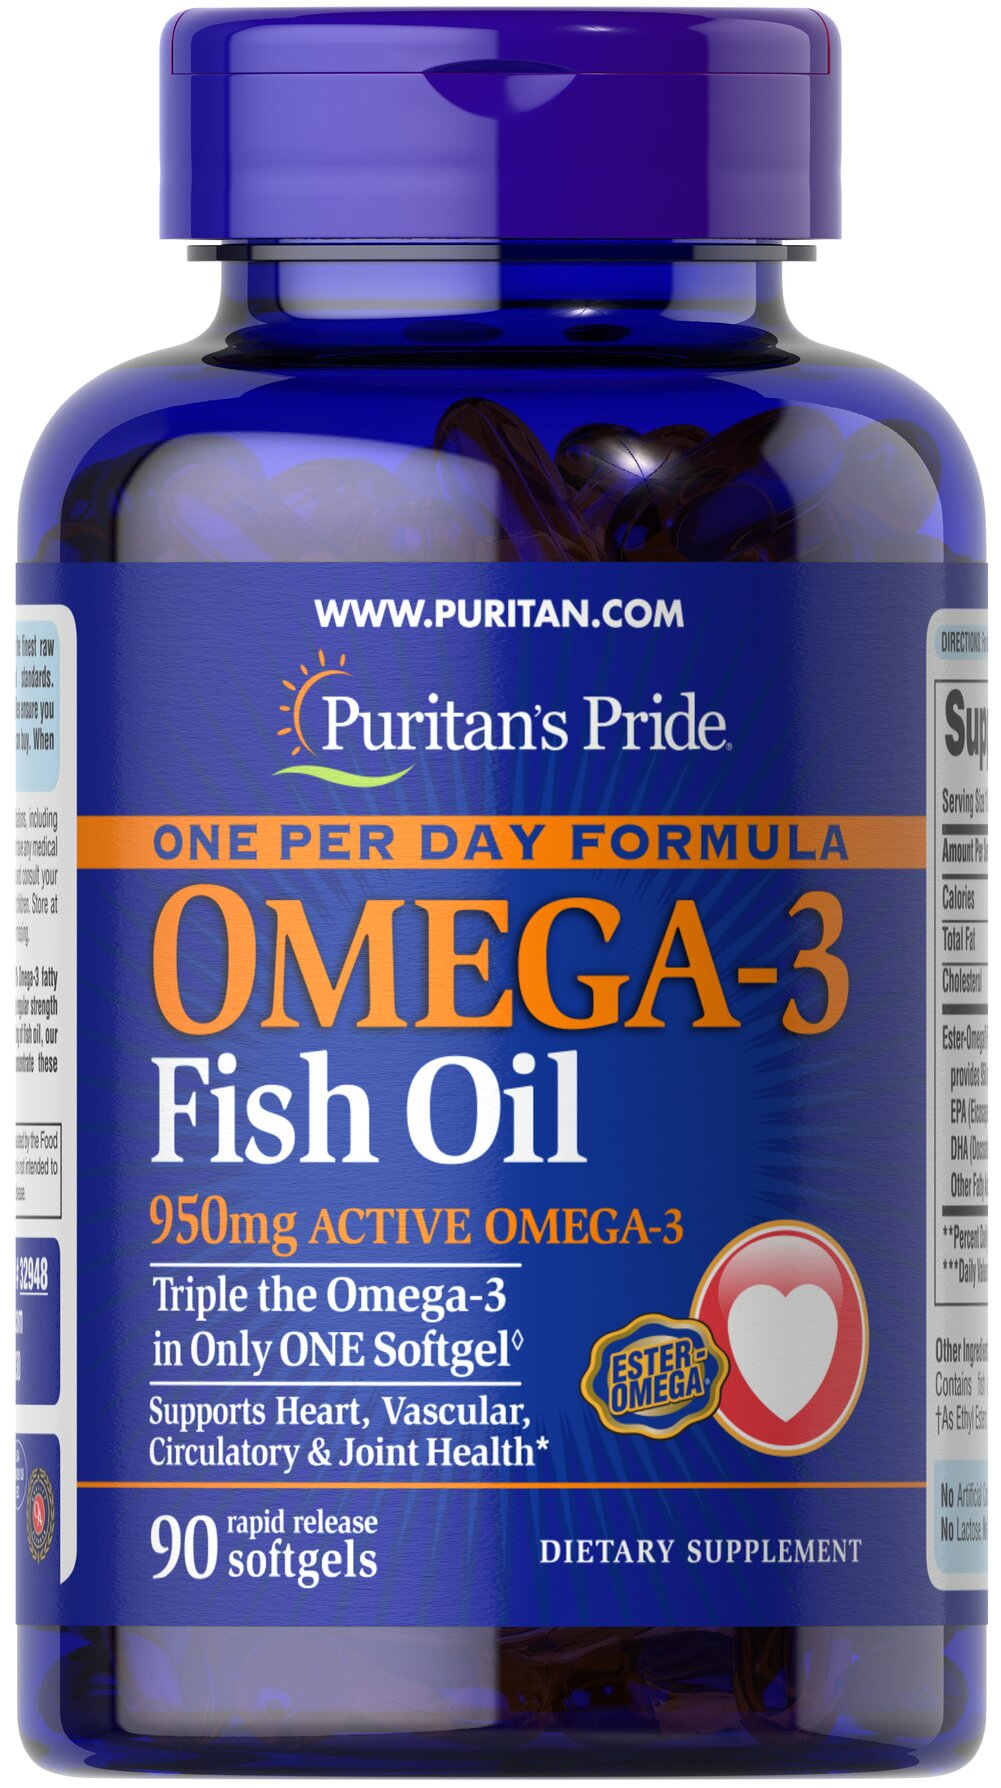 One Per Day Omega-3 Fish Oil 1360 mg (950 mg Active Omega-3)  90 Softgels 950 mg $20.99